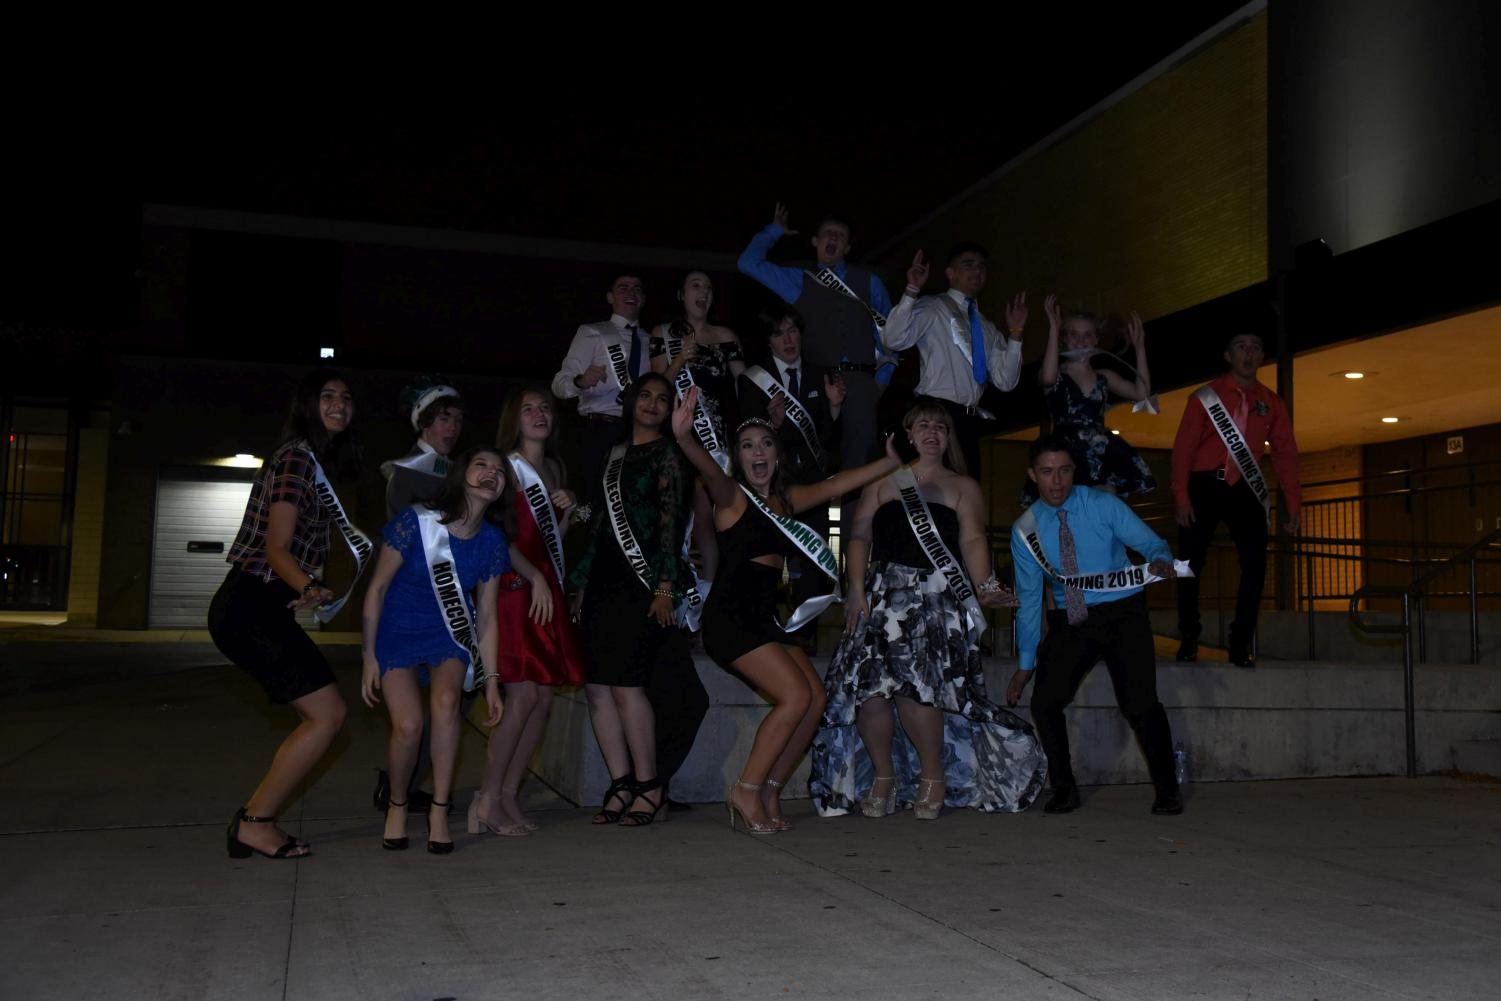 Homecoming court, all taken together.